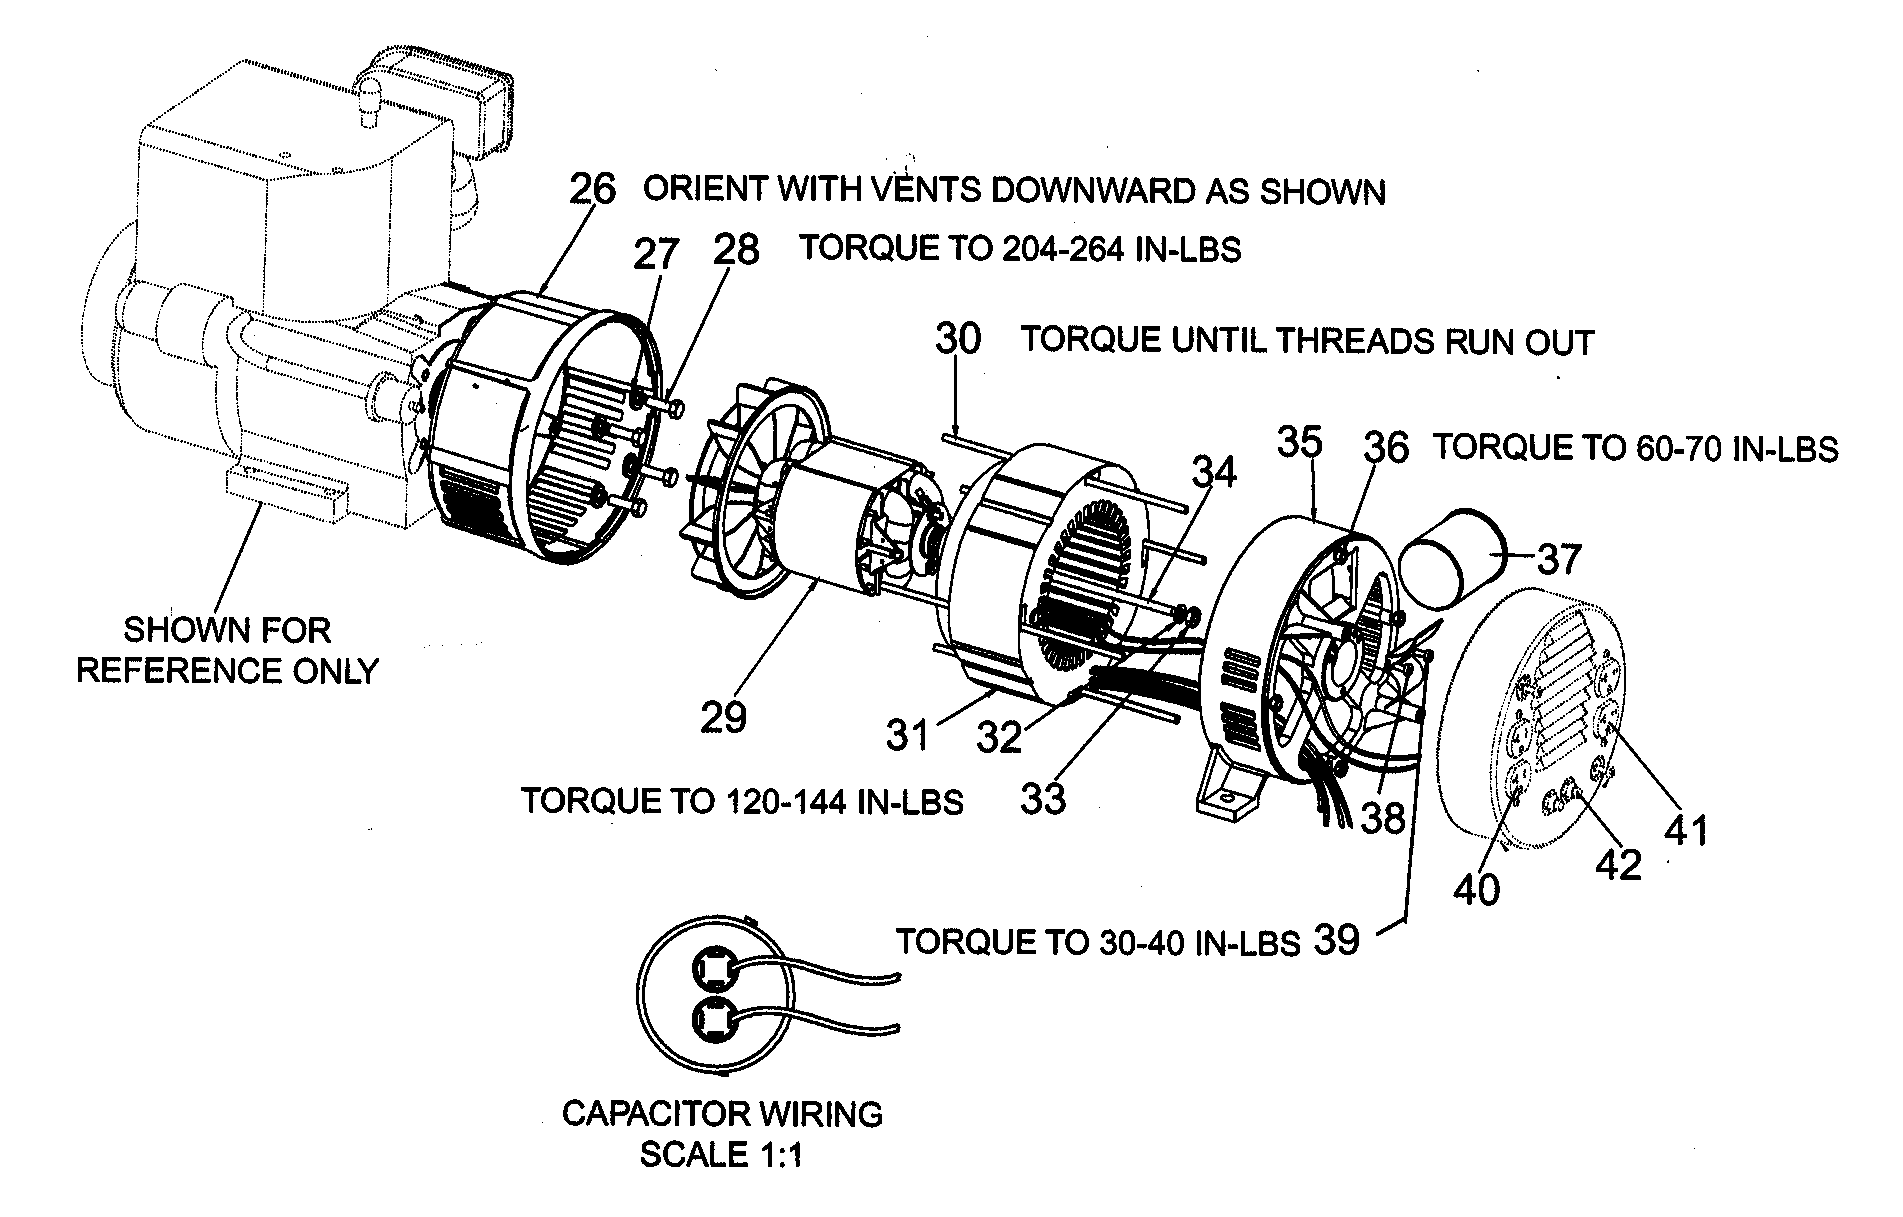 ENGINE/MOTOR Diagram & Parts List for Model gb50004